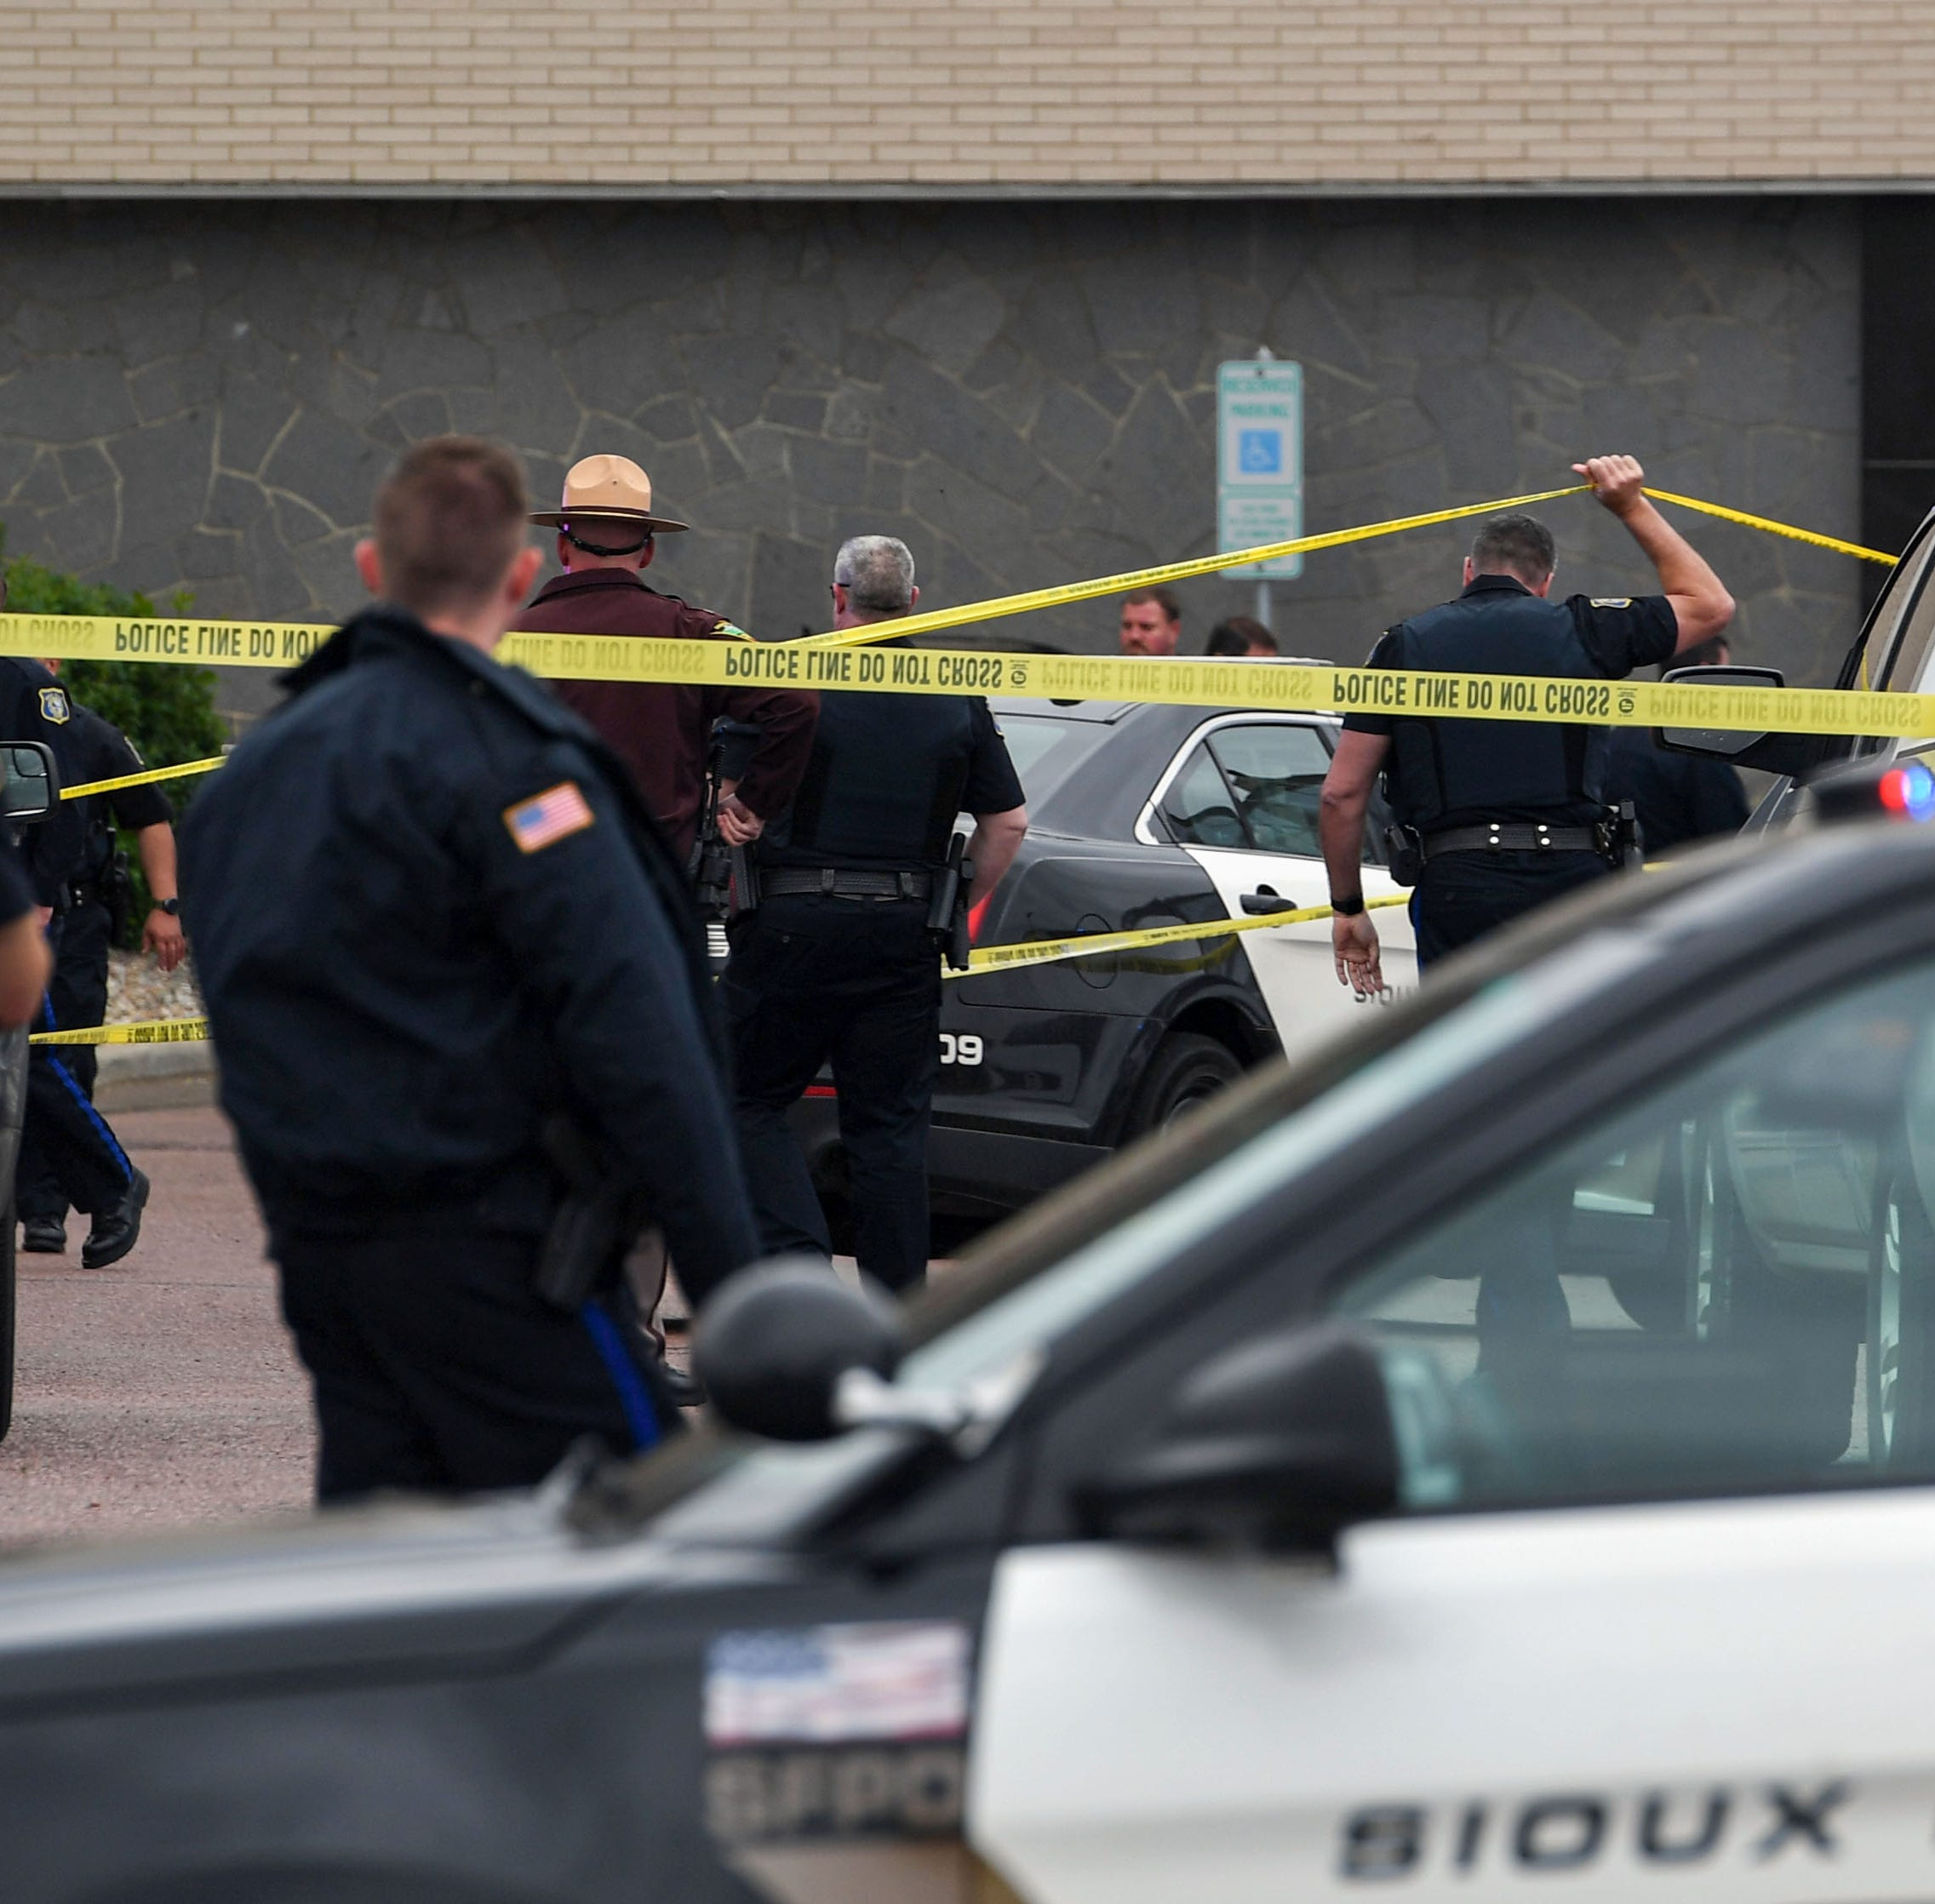 Update: Authorities have identified suspect in Sioux Falls officer-involved shooting